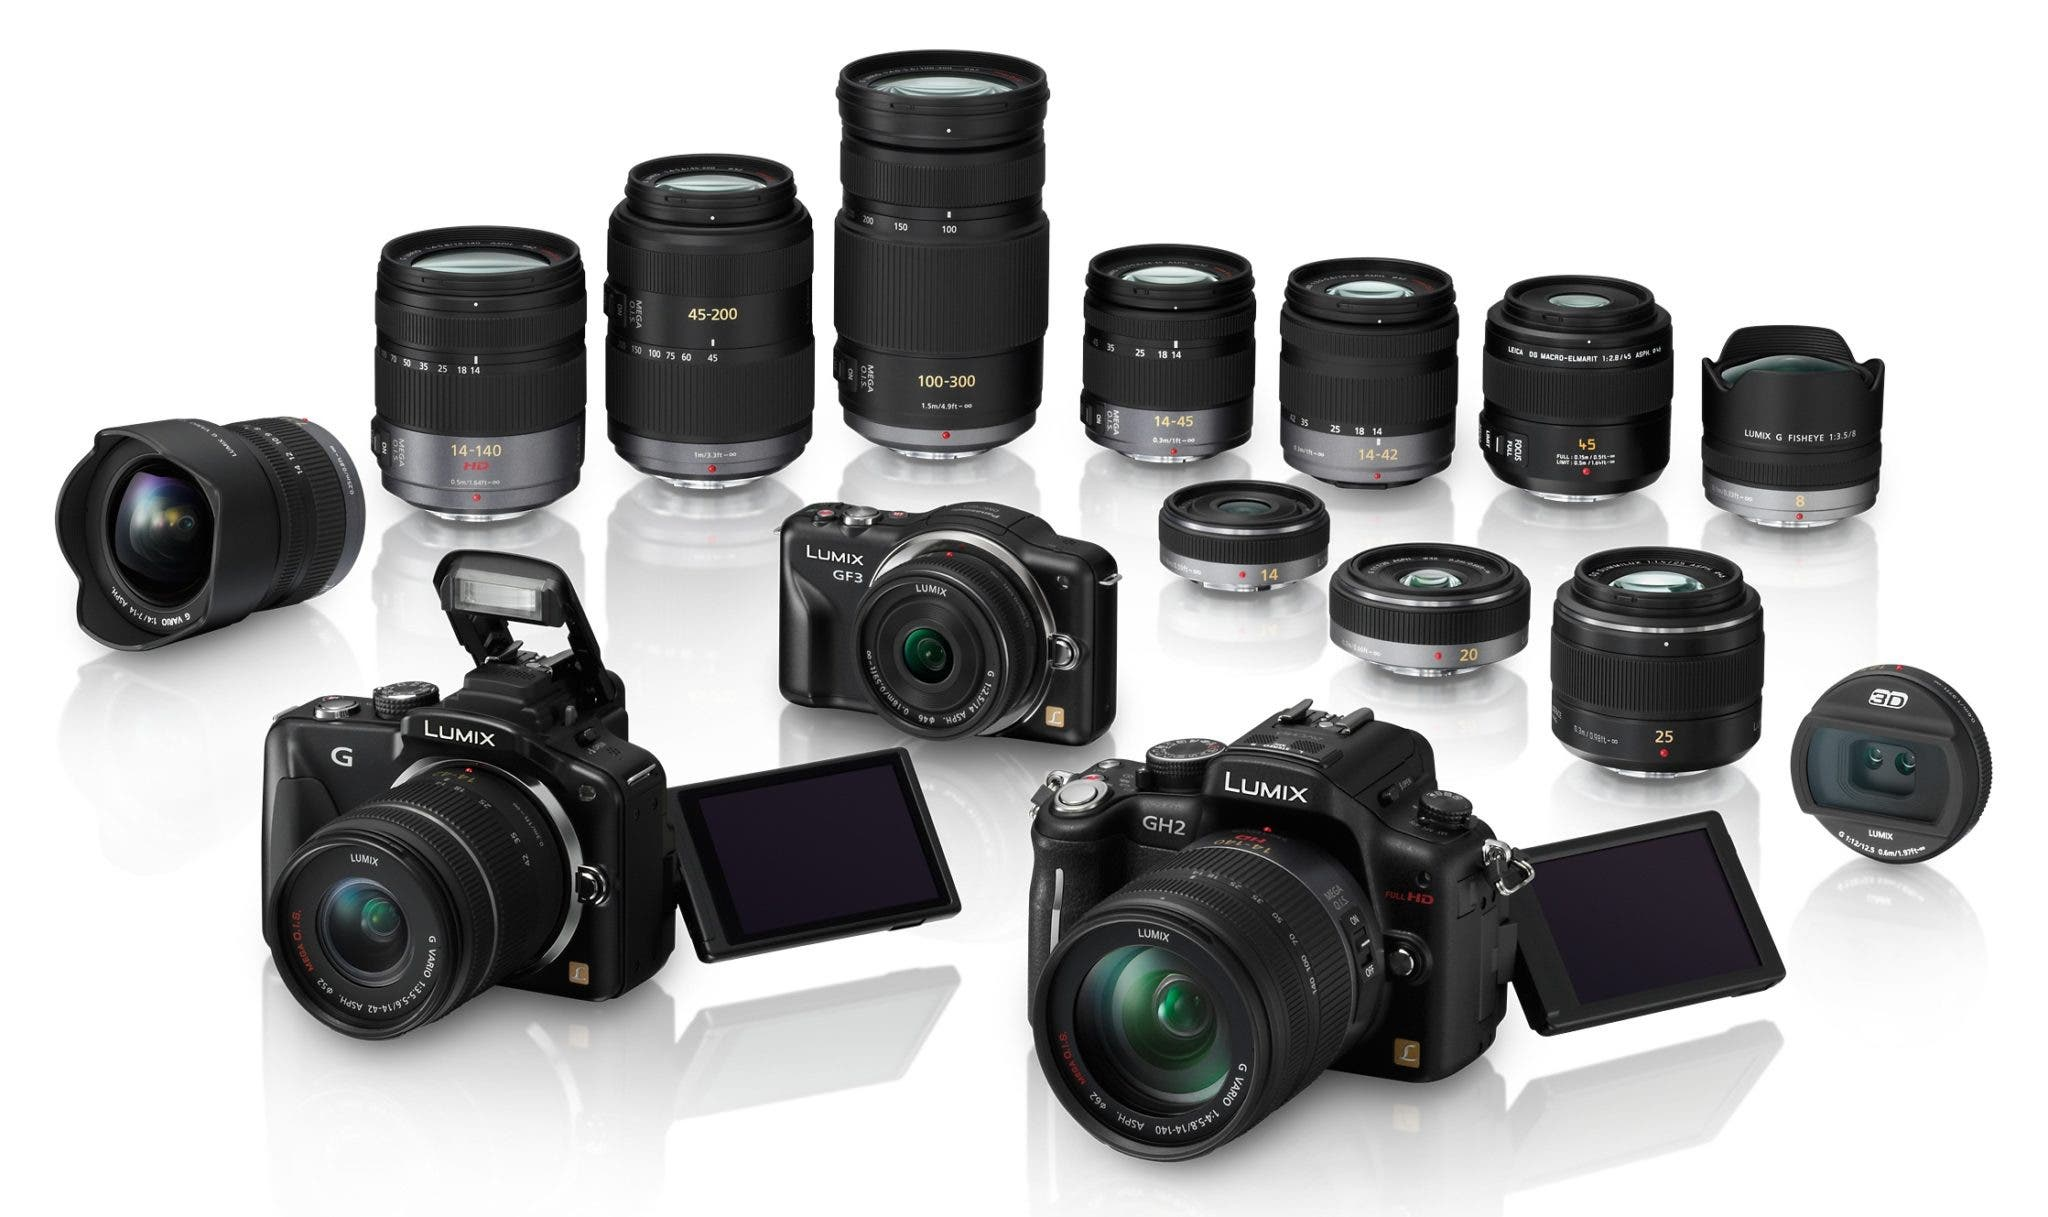 Cameras And Lenses: Panasonic's Rumored GM1 Camera Is Supposed To Be The